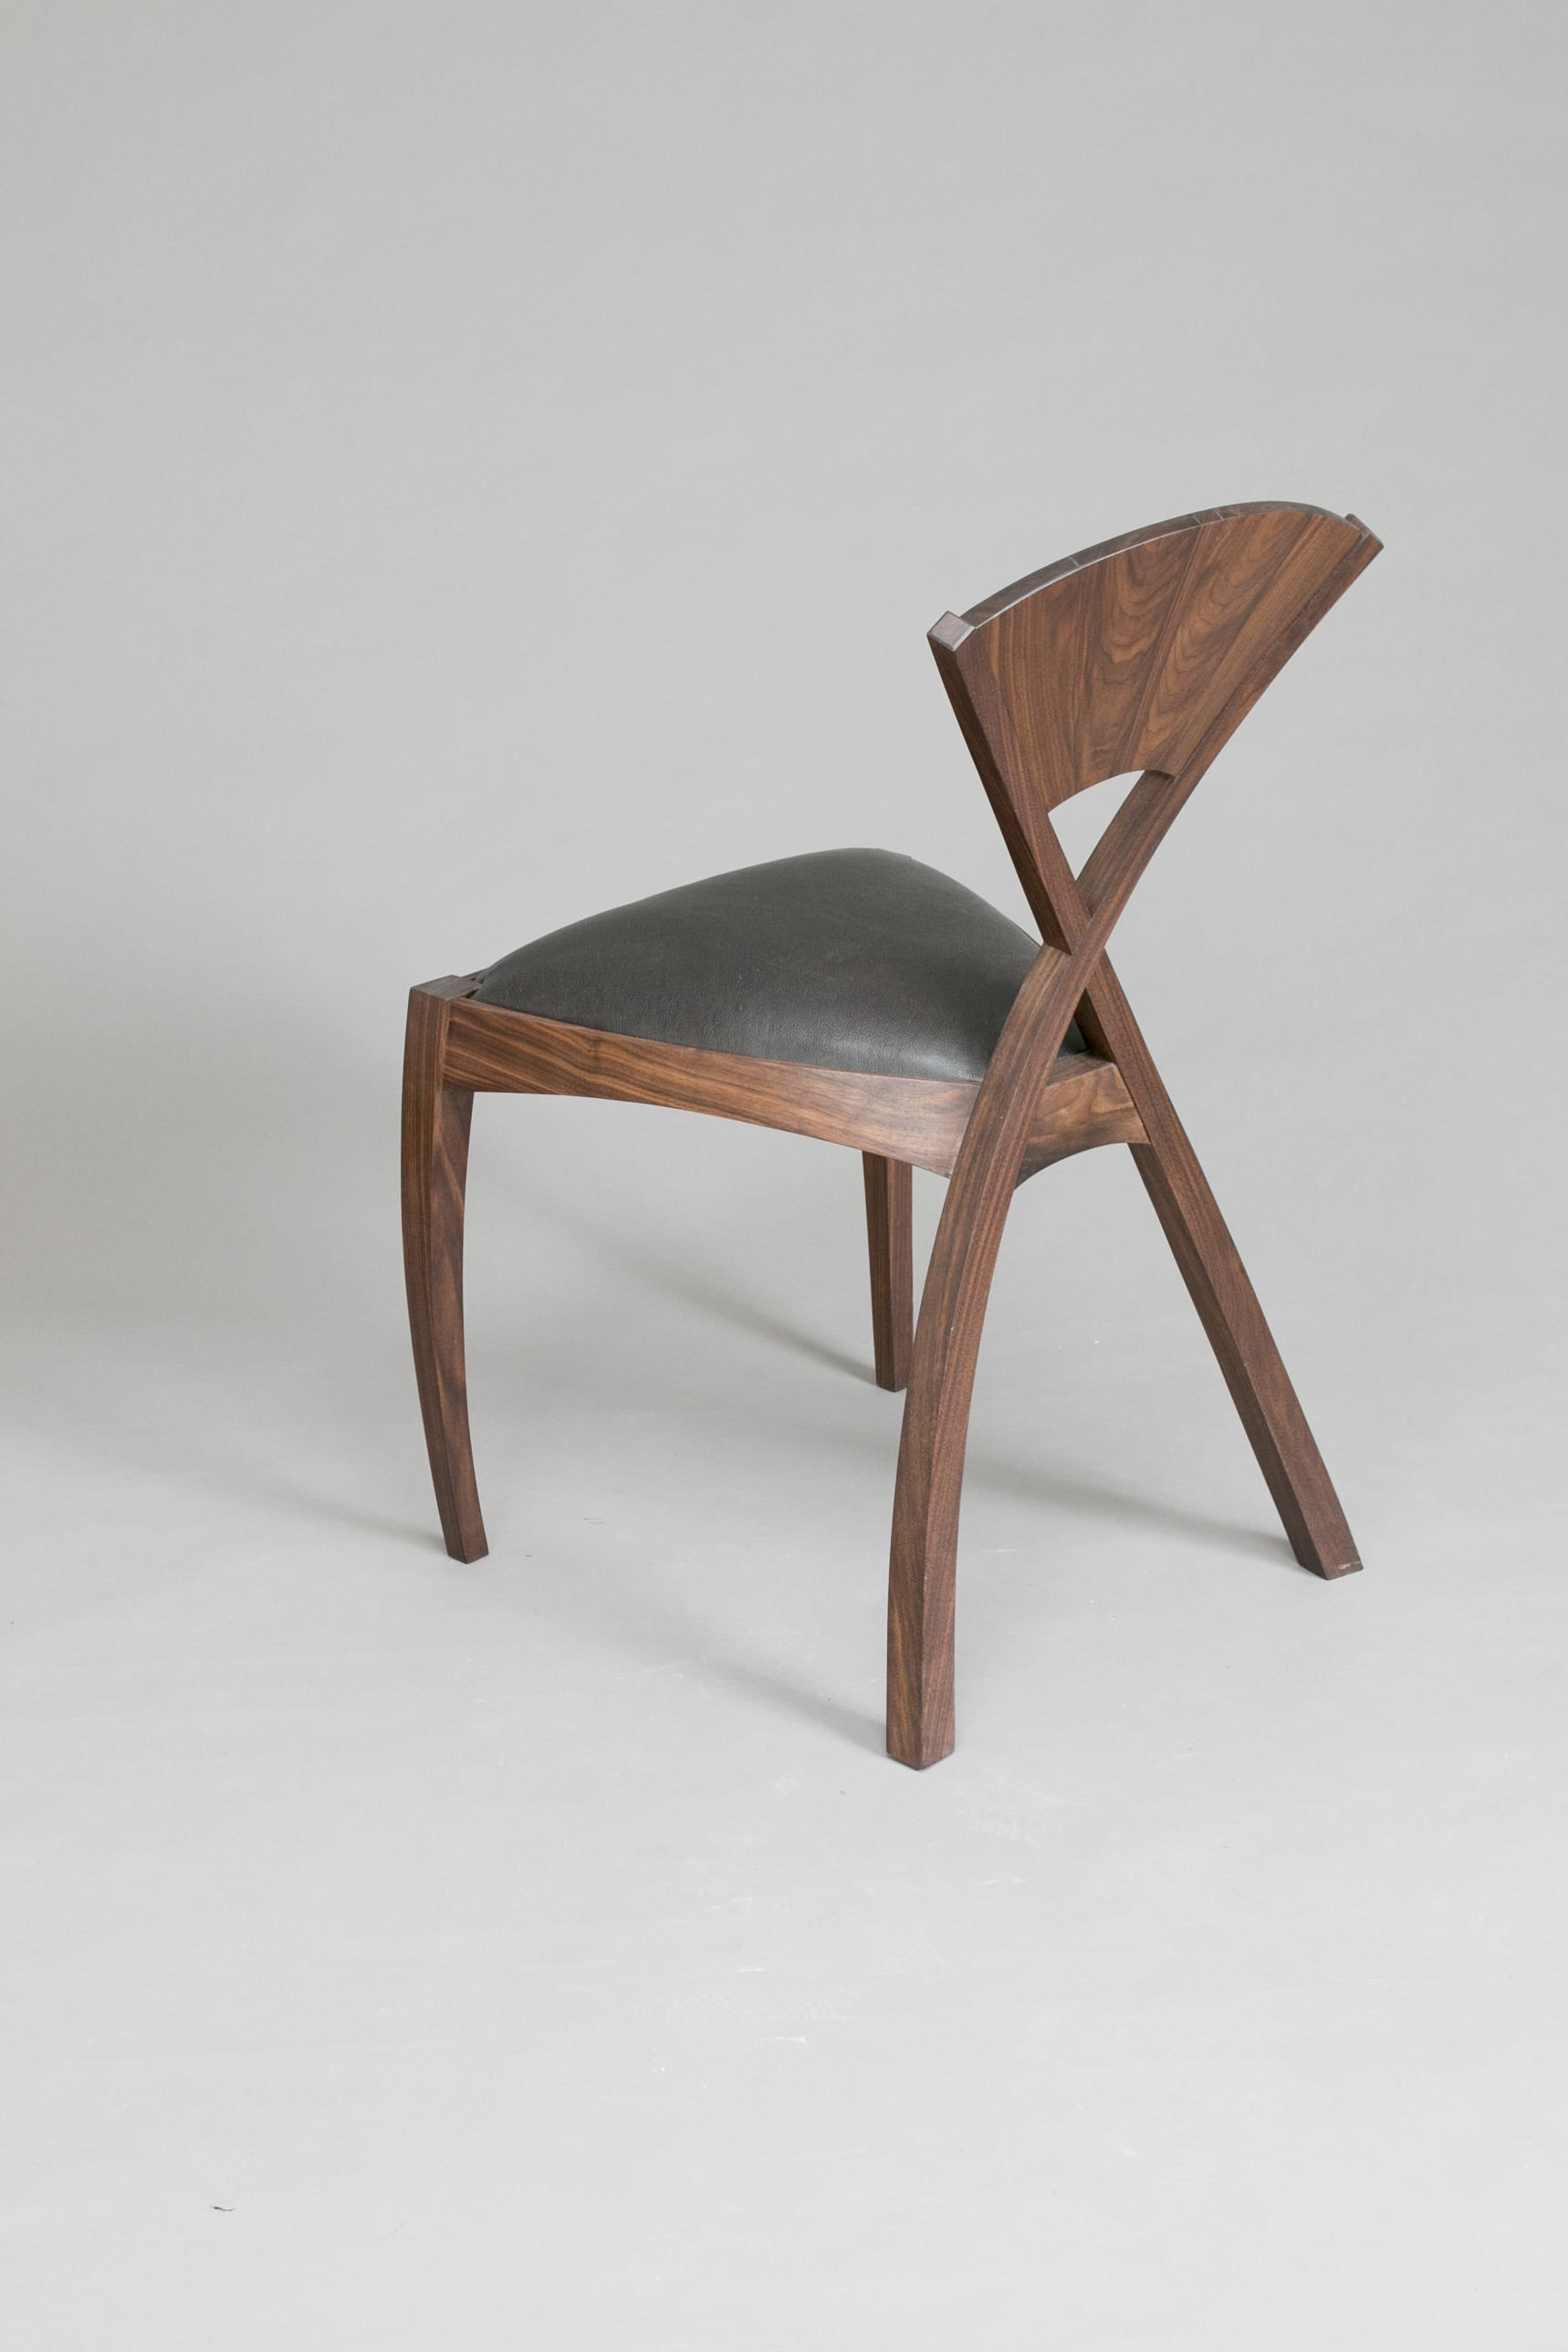 Michael Biggs - Chair Design